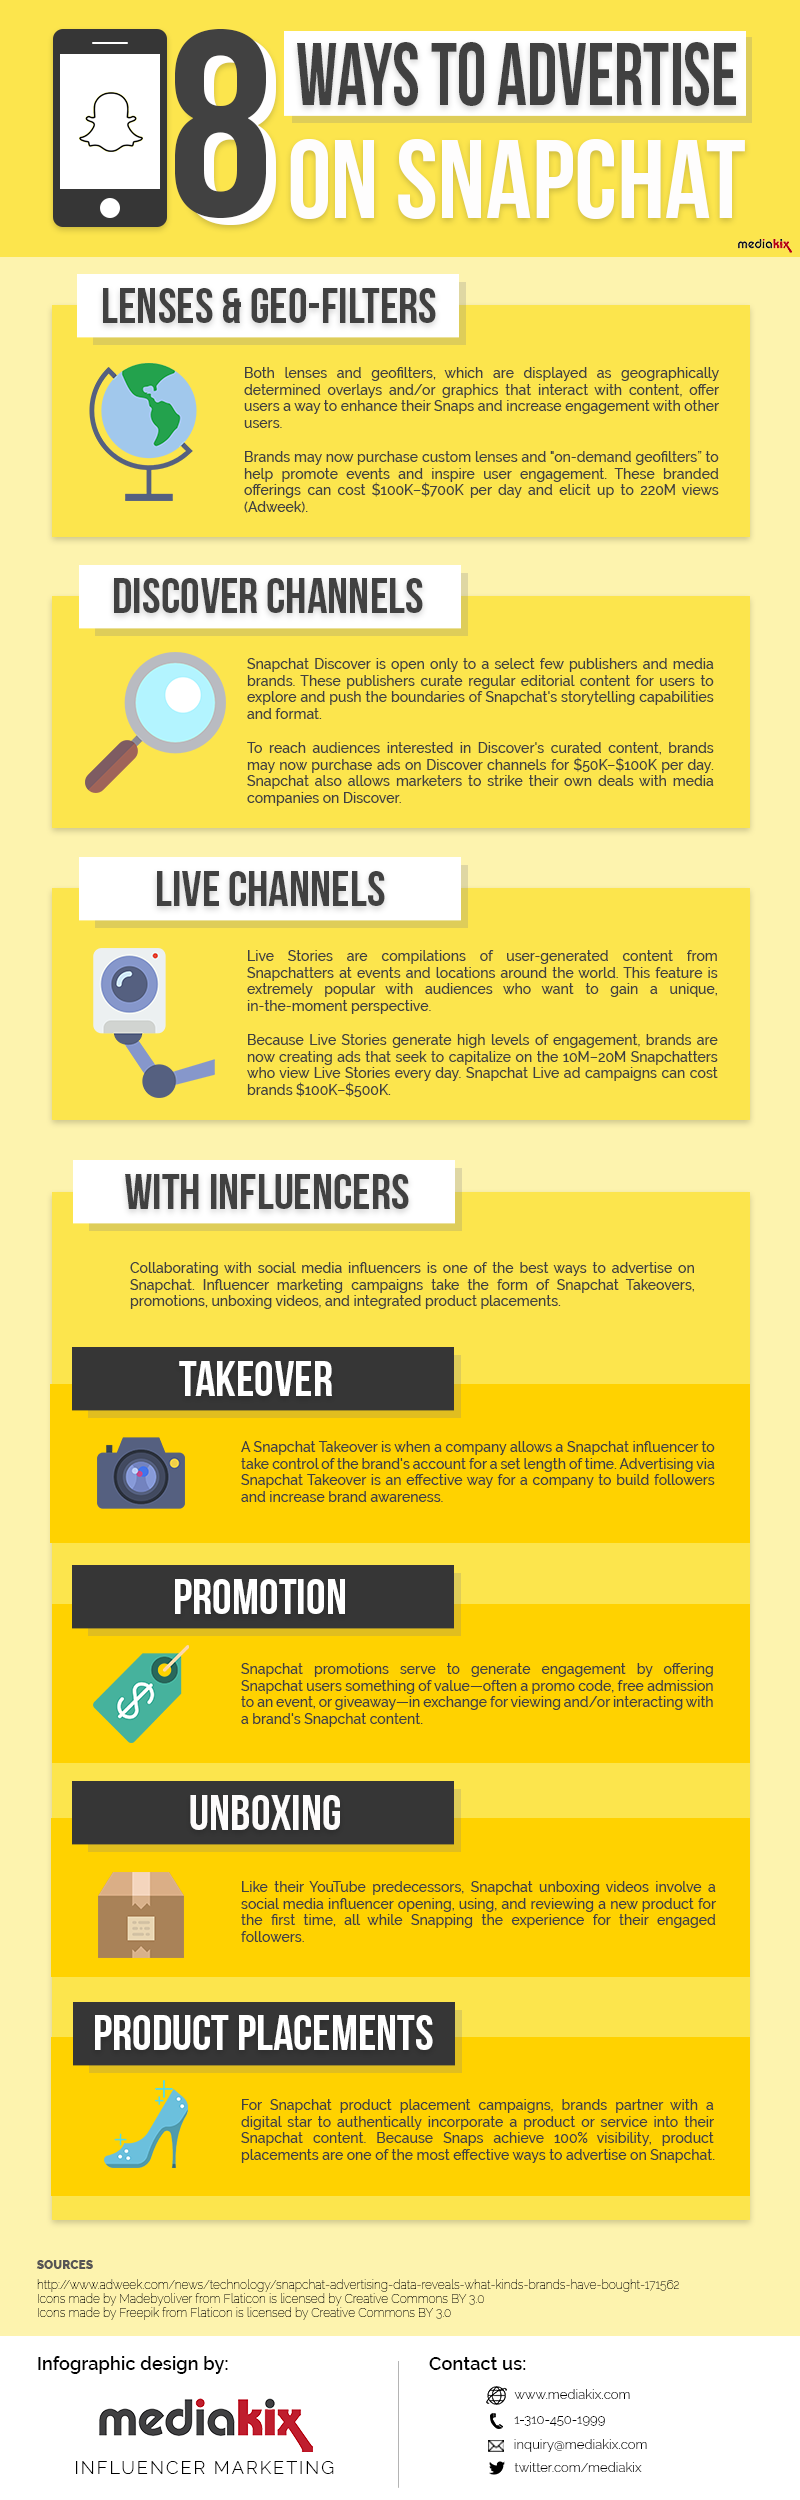 How-To-Advertise-on-Snapchat-Marketing-Infographic